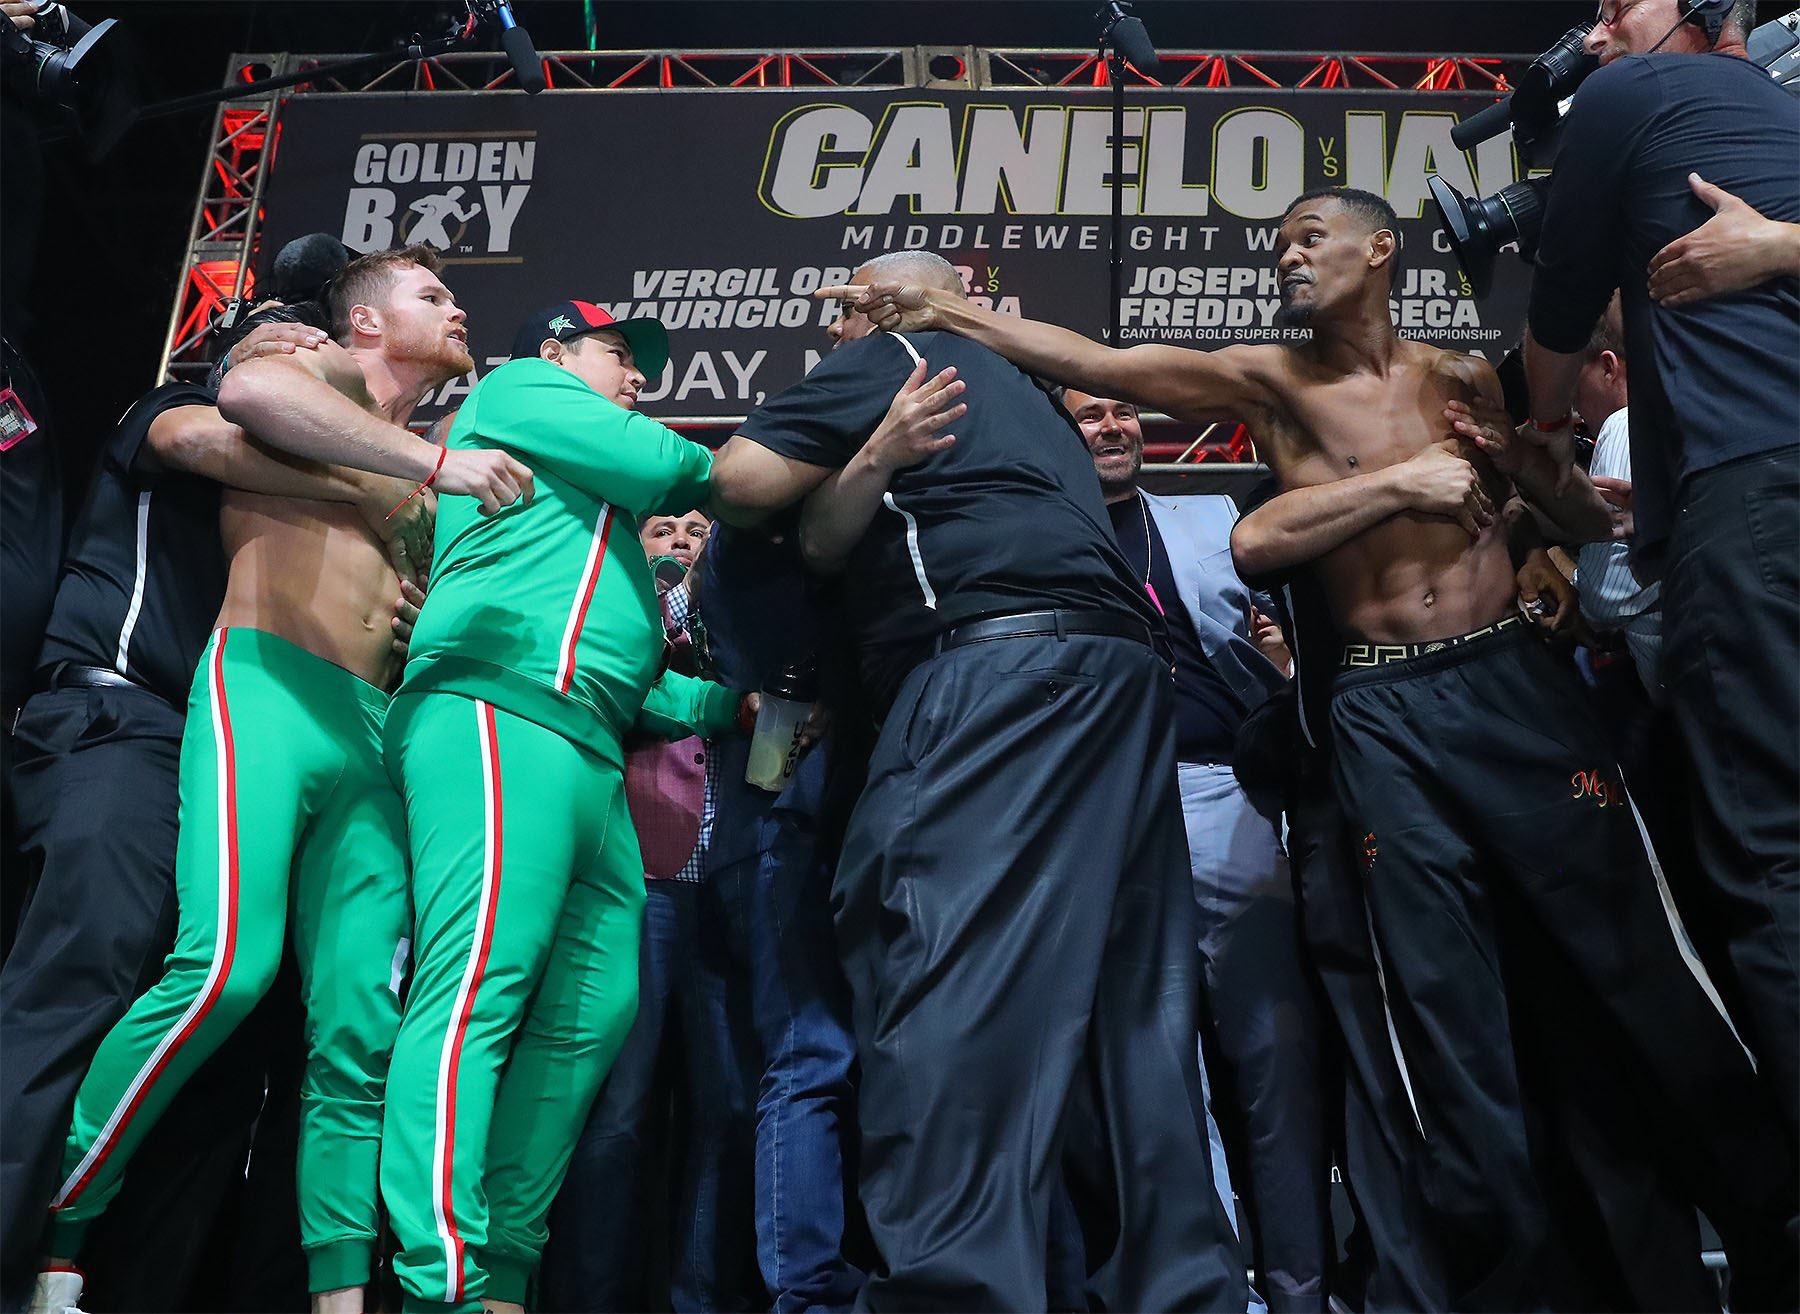 CD6001A9 8270 440E B3D6 11AF54062D03 - Canelo-Jacobs Reportedly Lures In 1.2 Million Viewers